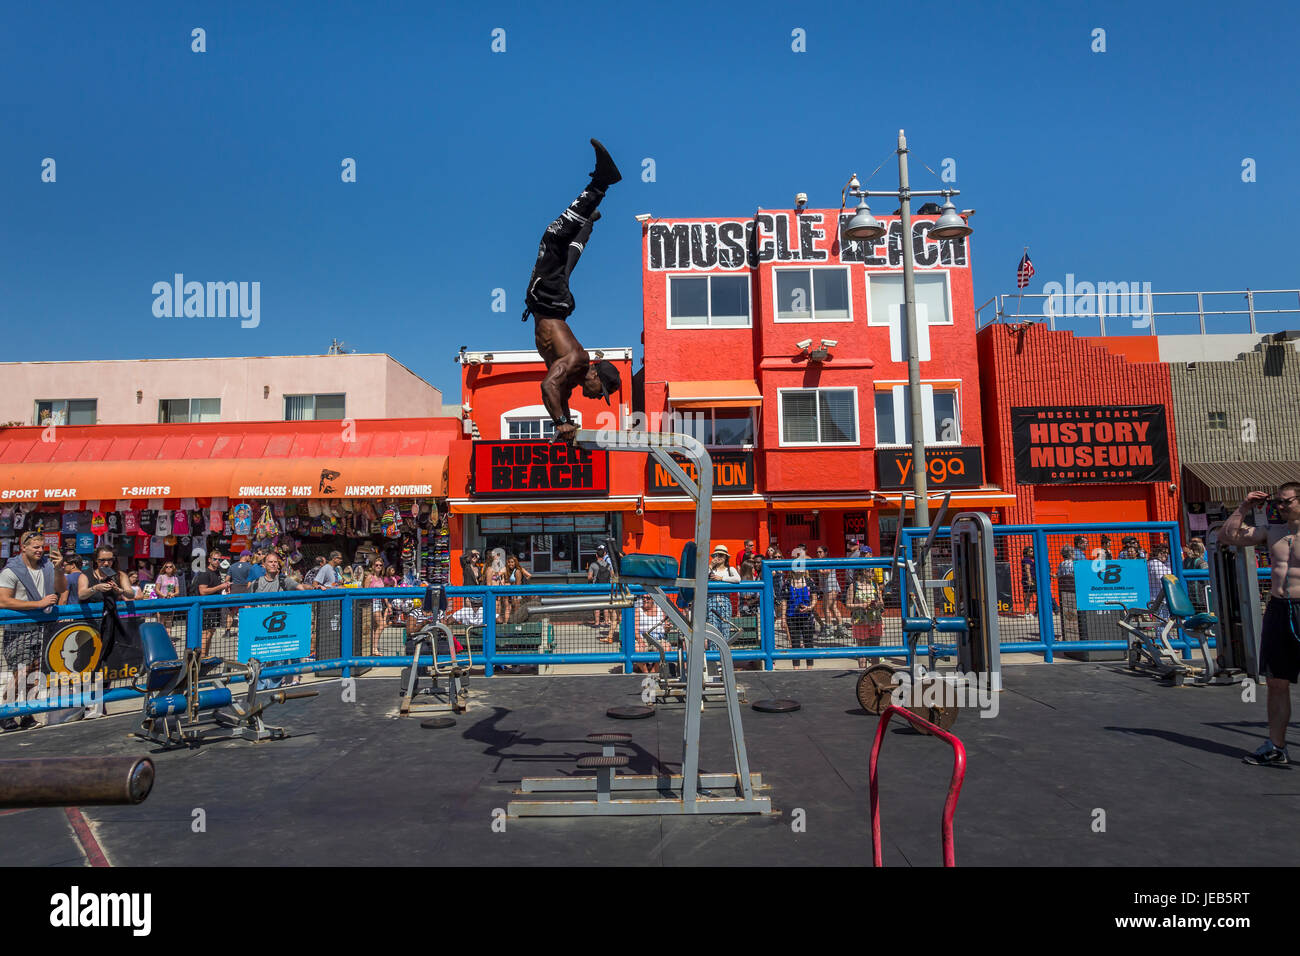 Adulte, homme, homme, étirement, bodybuilder, bodybuilding, Muscle Beach, Muscle Beach Venice, Venice Beach, Photo Stock